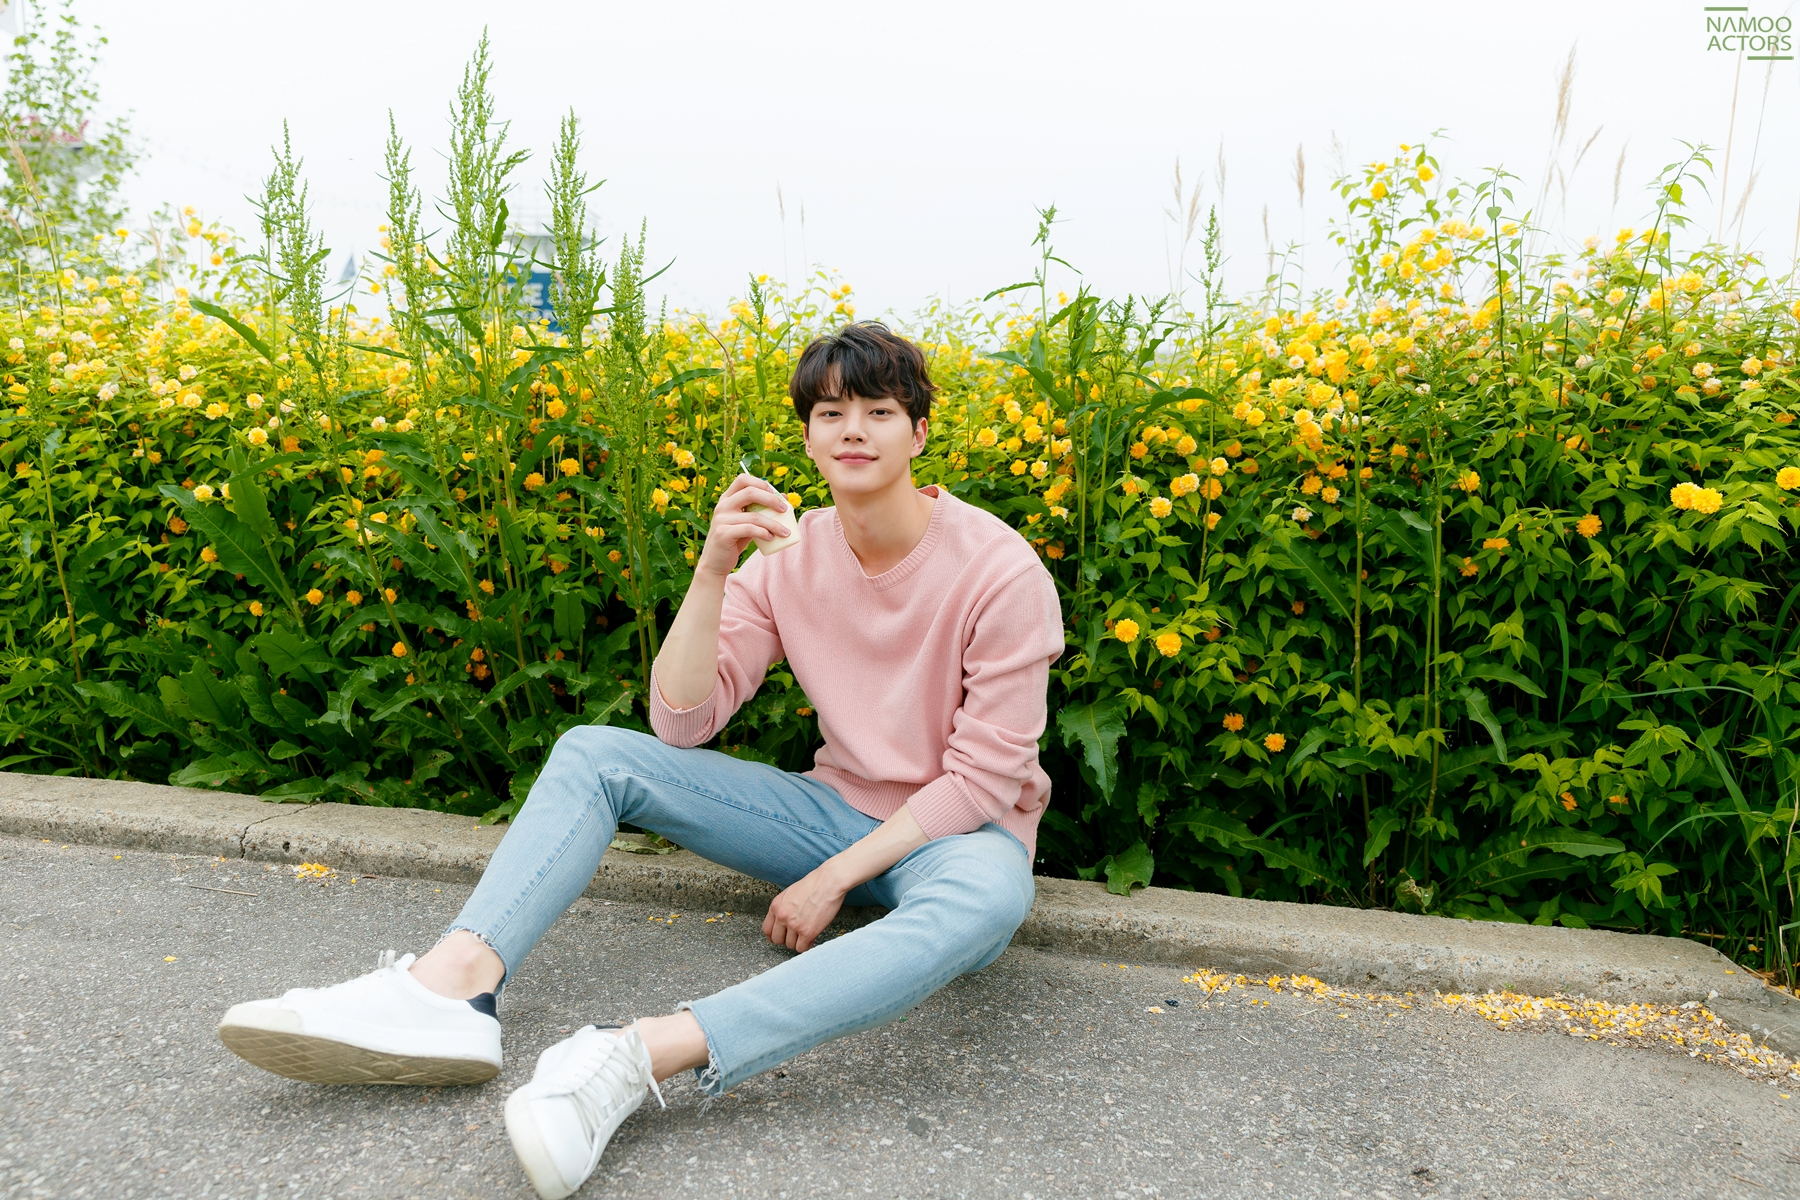 Song Kang, Song Kang actor